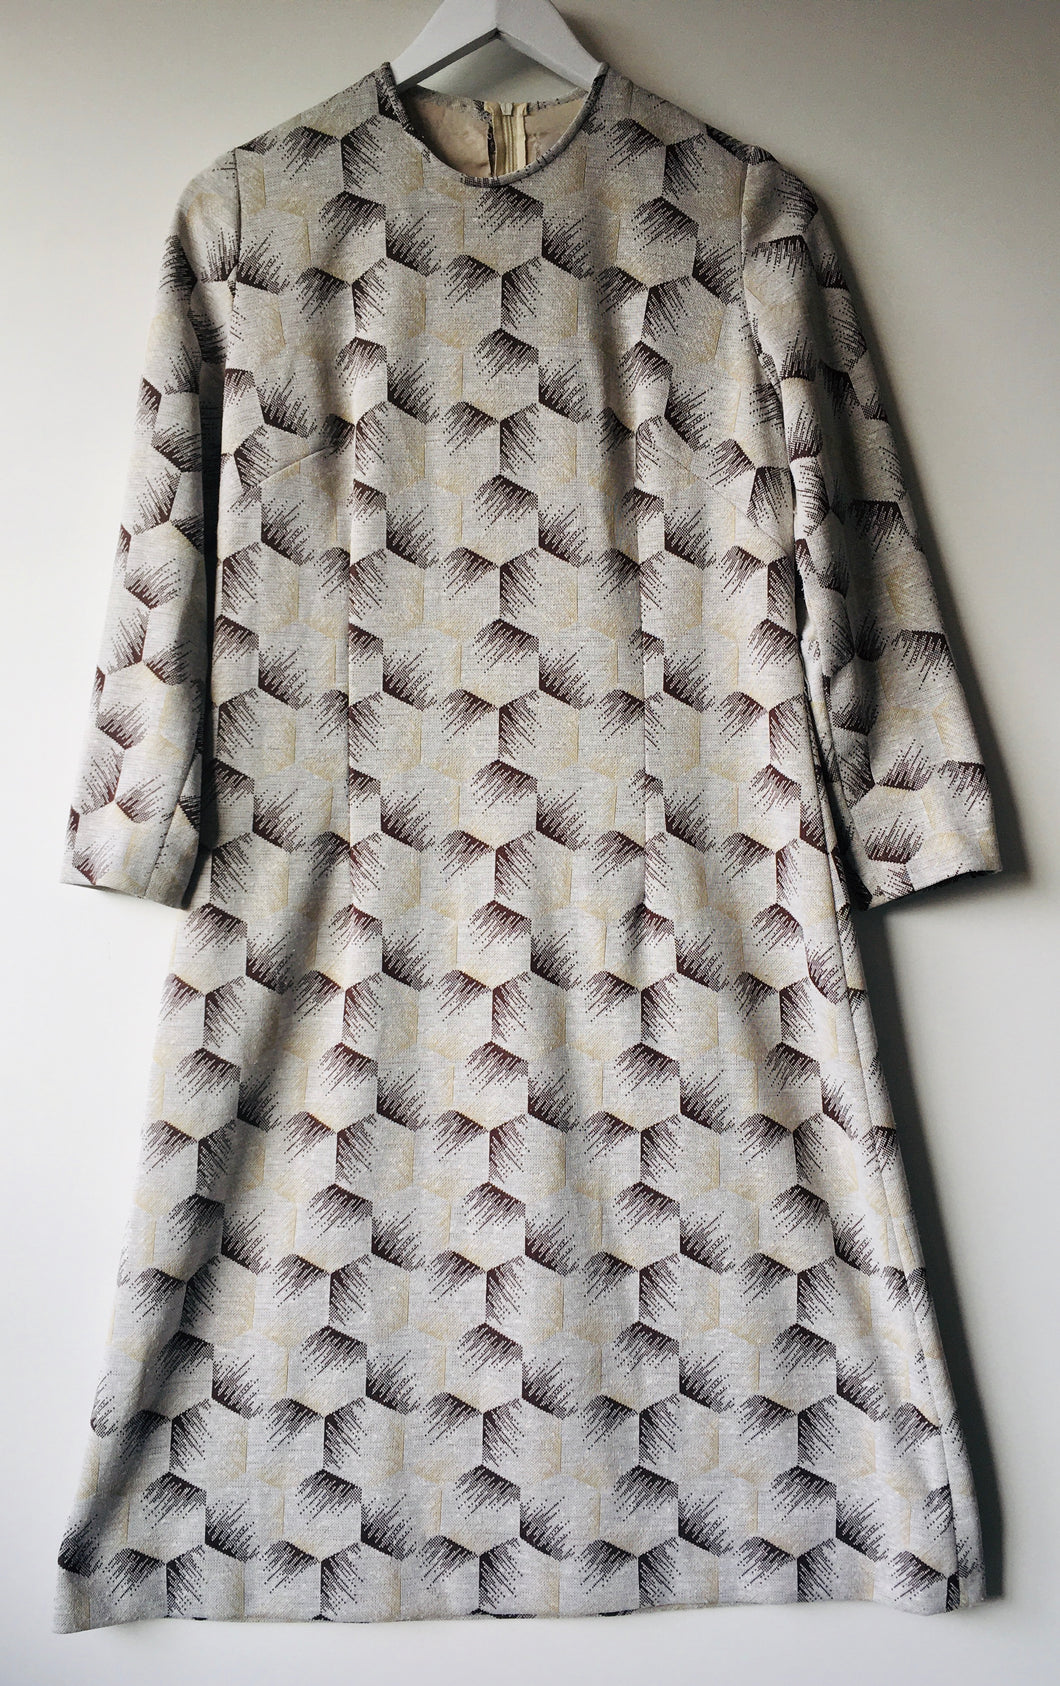 1960s vintage shift dress S/M